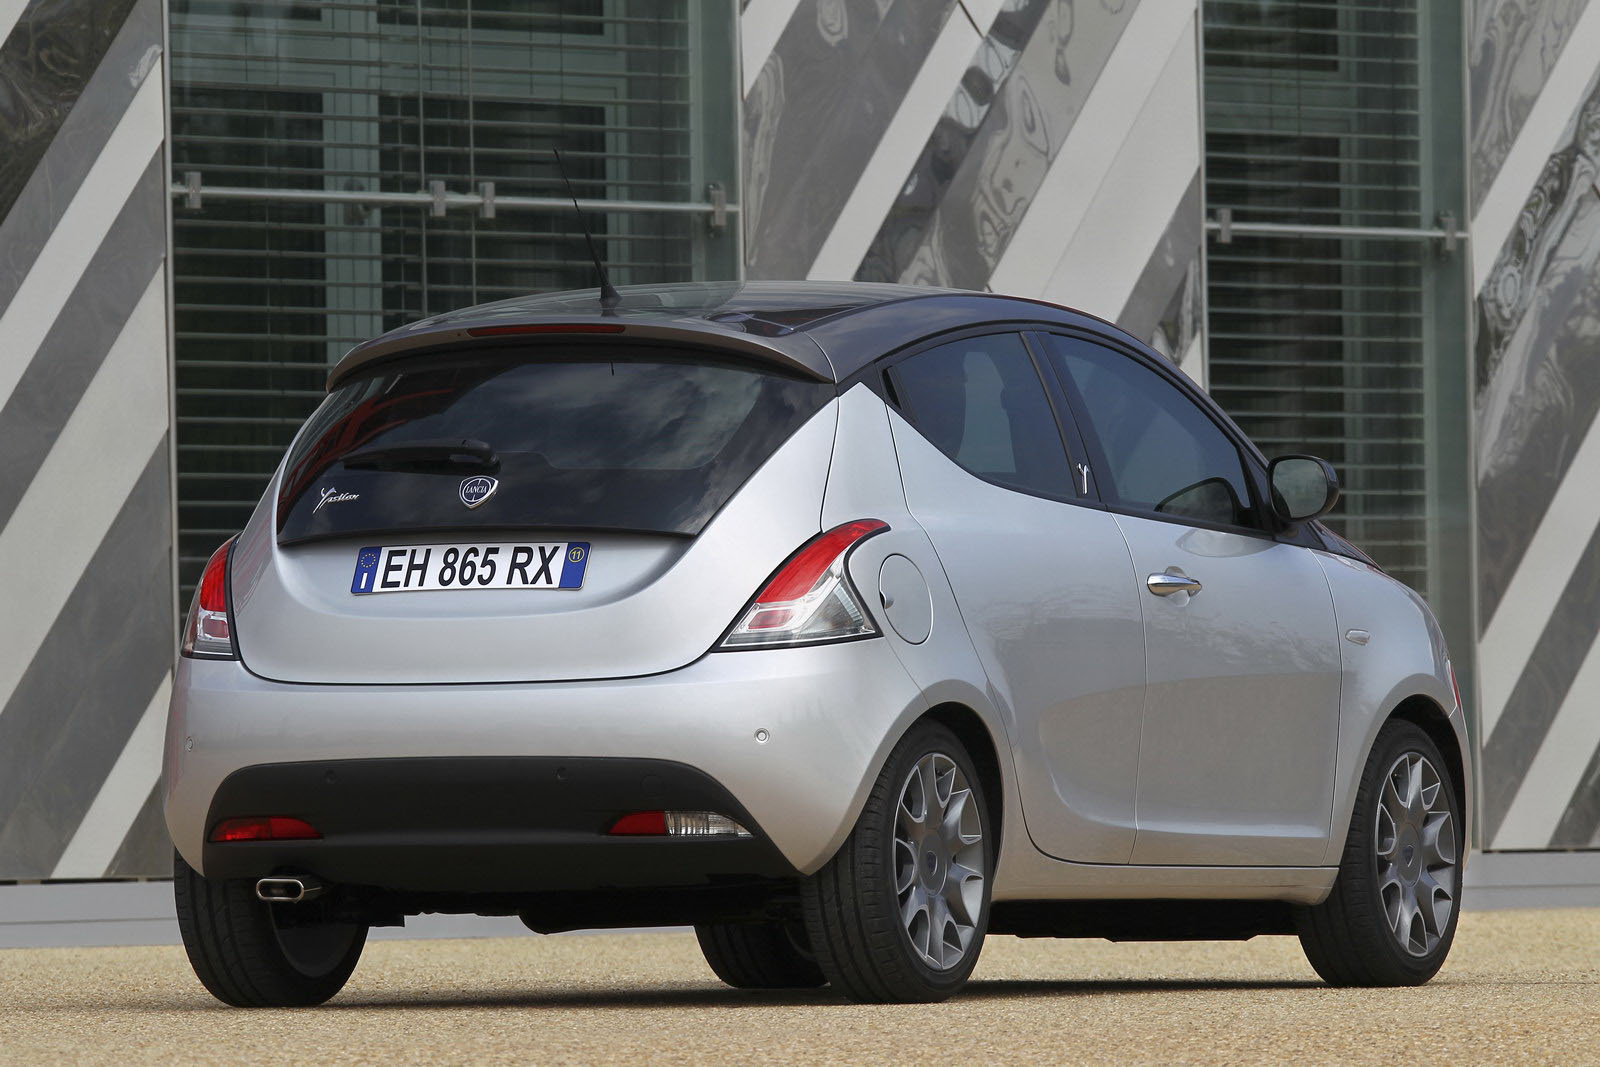 Lancia Ypsilon 43 SMARTY LANCIA 2012 YPSILON GETS CLICKED